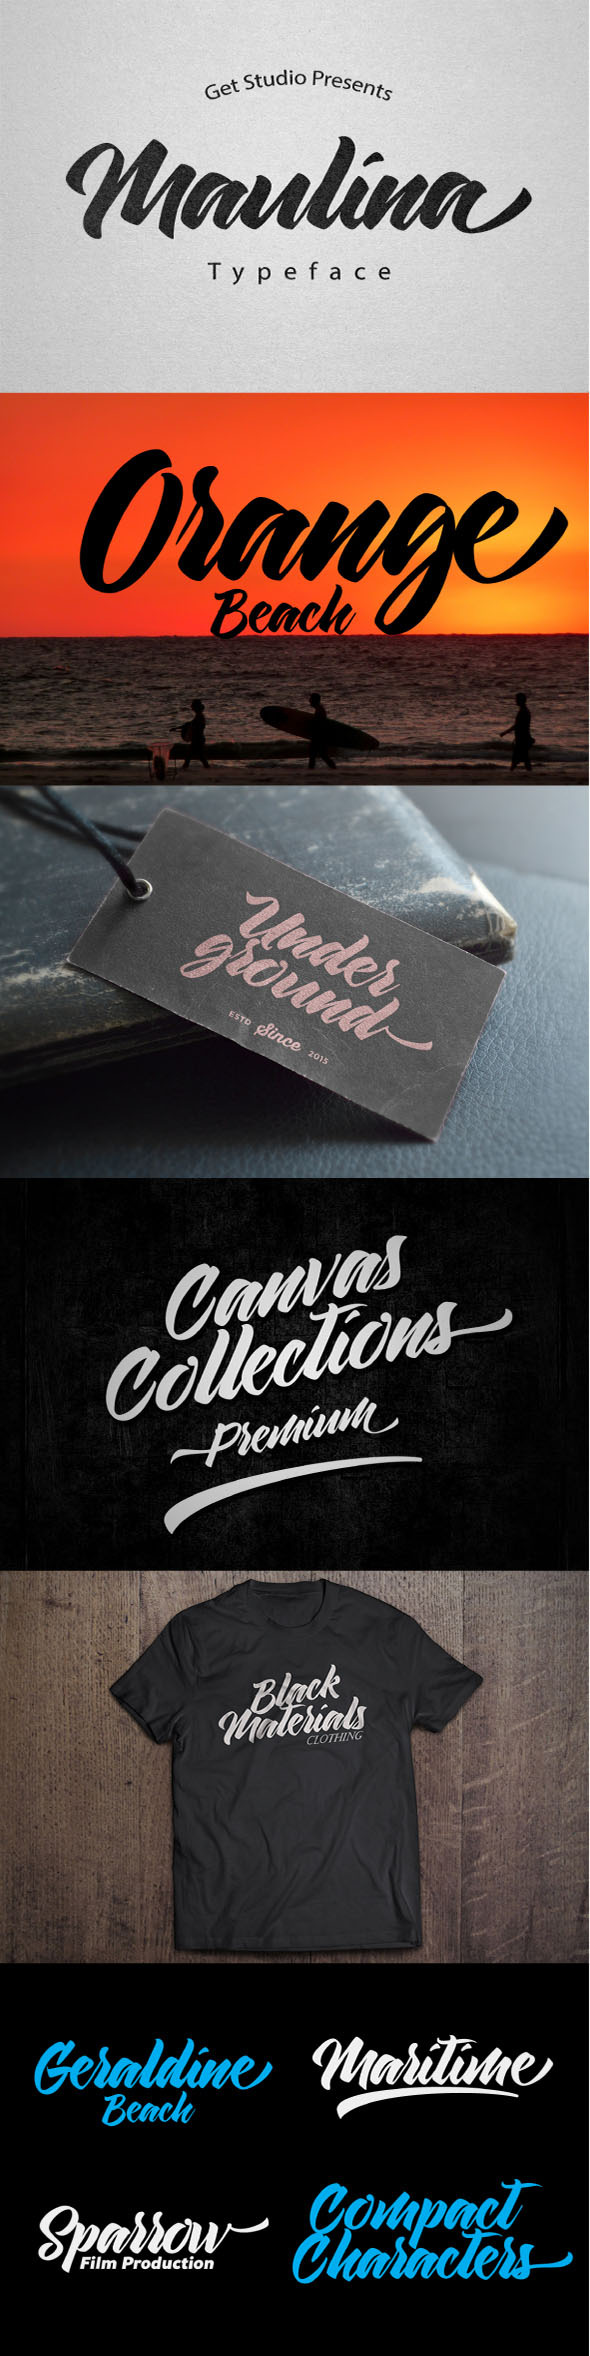 GraphicRiver Maulina Typeface 11799817